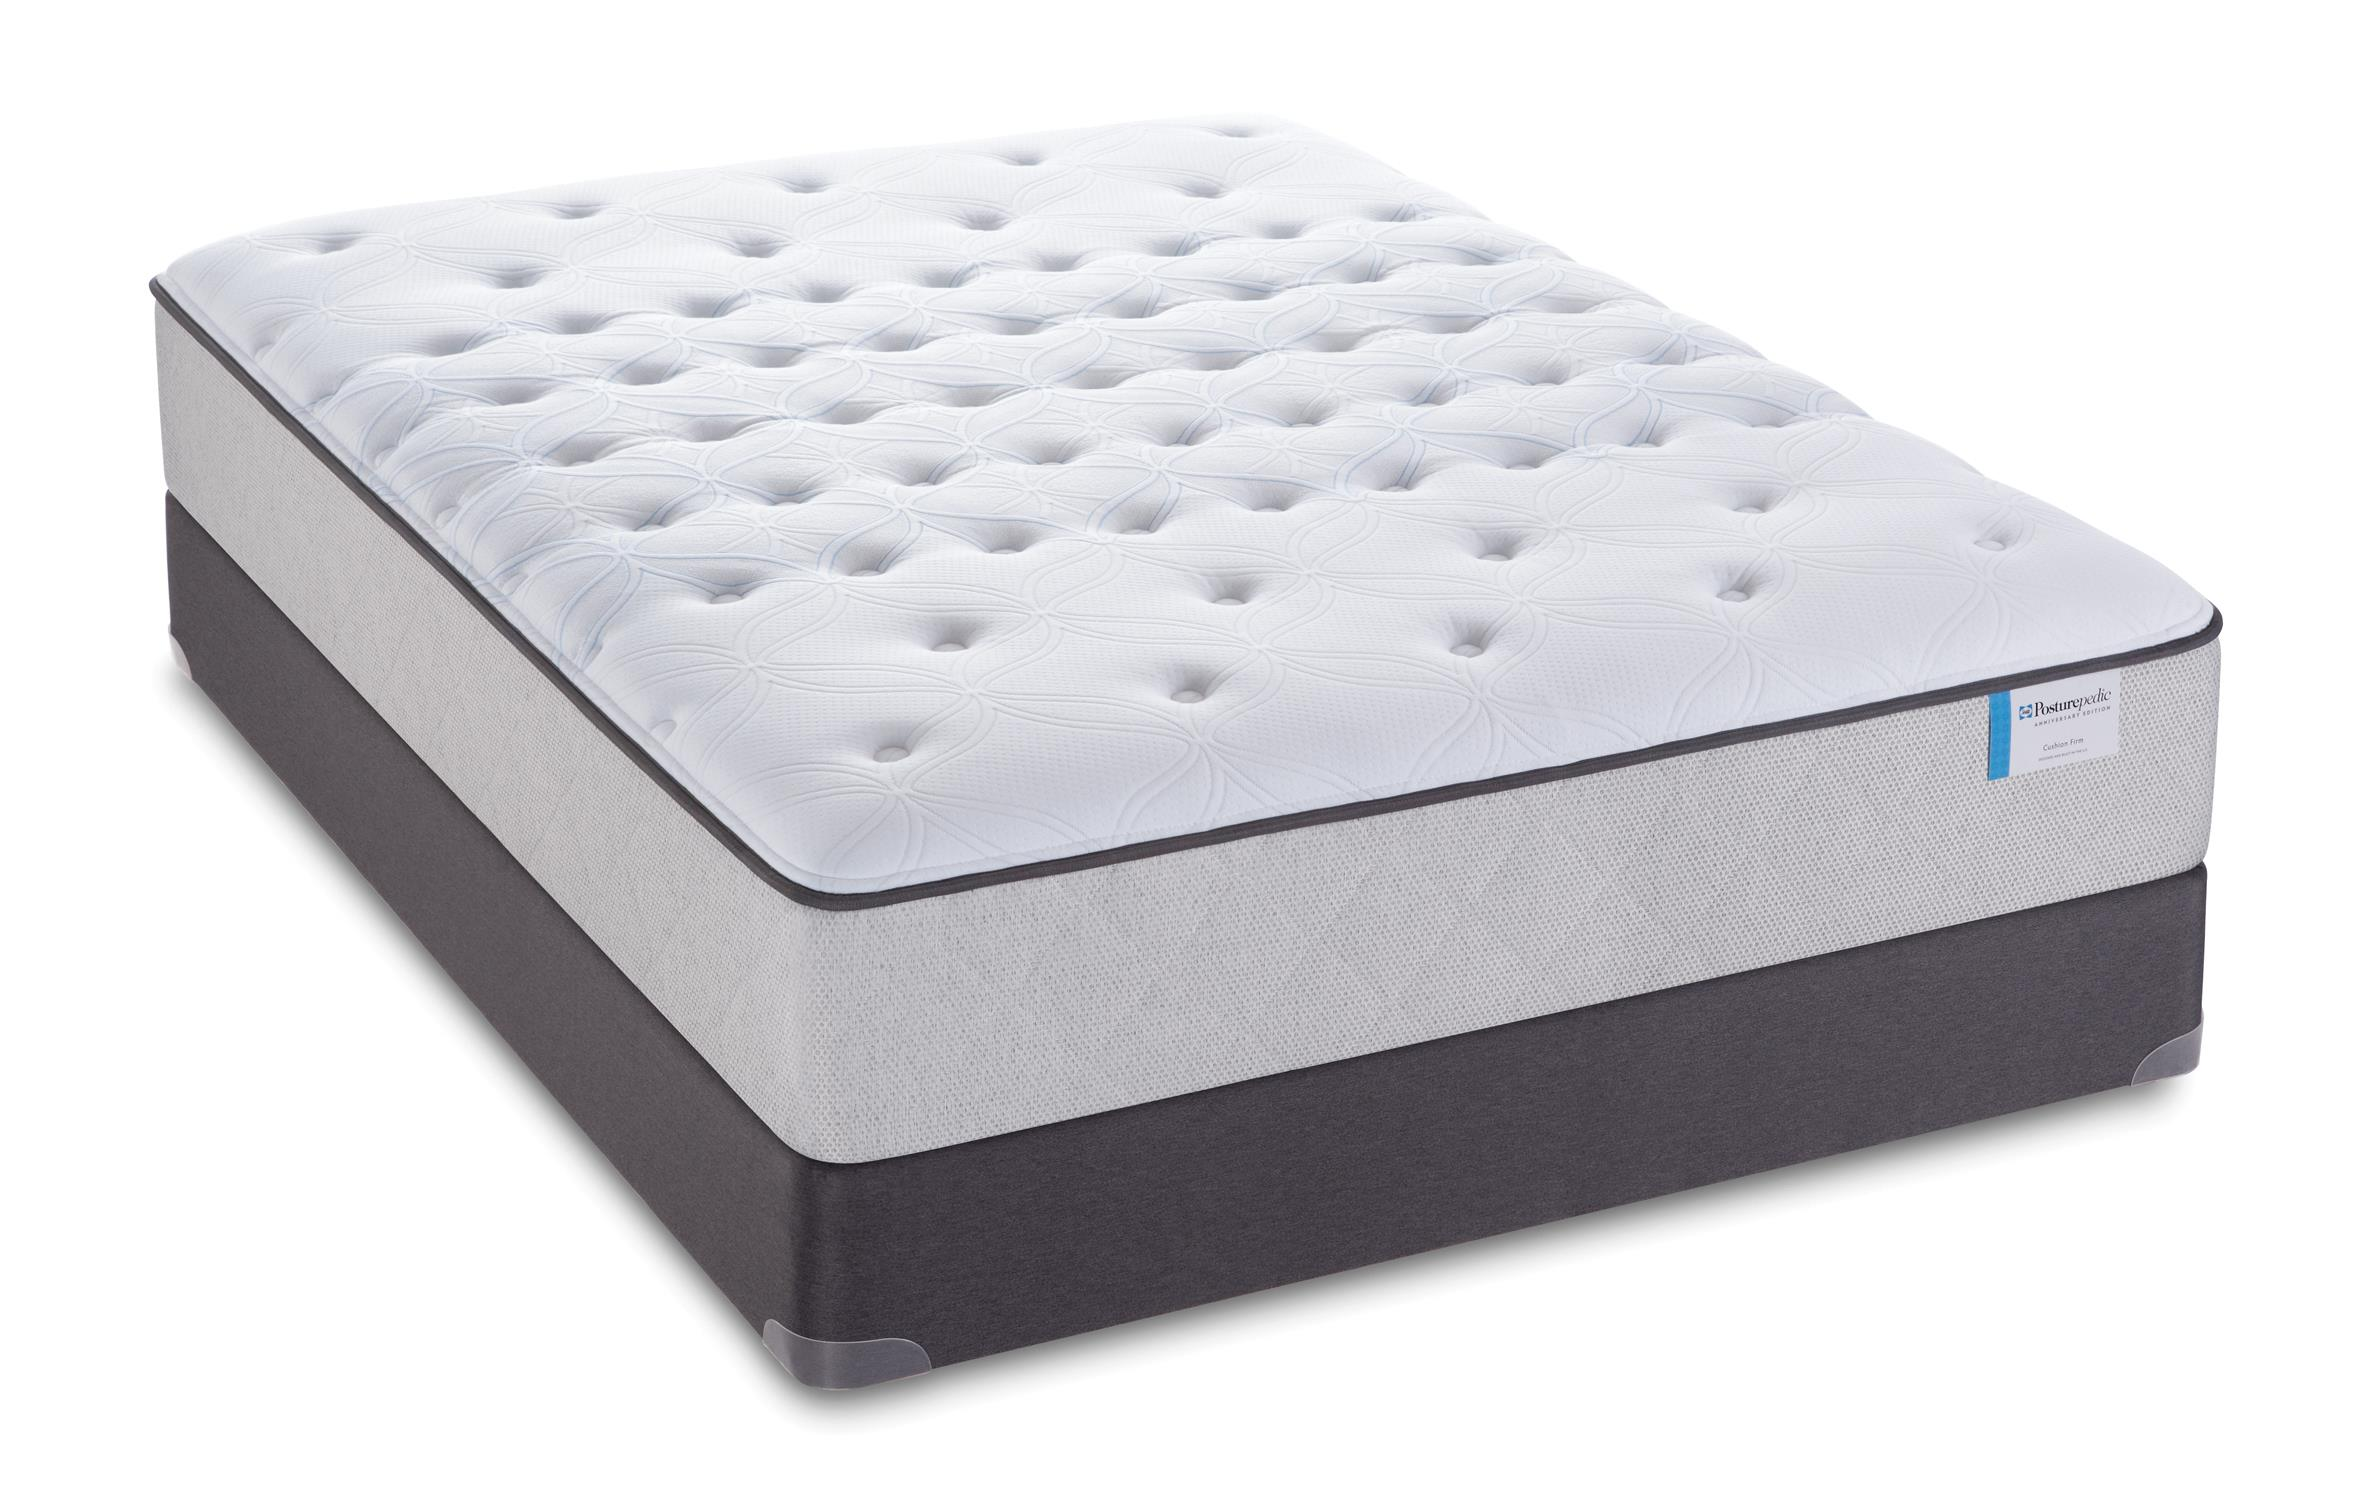 "Sealy Posturepedic 65 Year Anniversary Edition Full Firm 12"" Mattress Set, LP - Item Number: Firm12-F+SSLPFndtn-F"